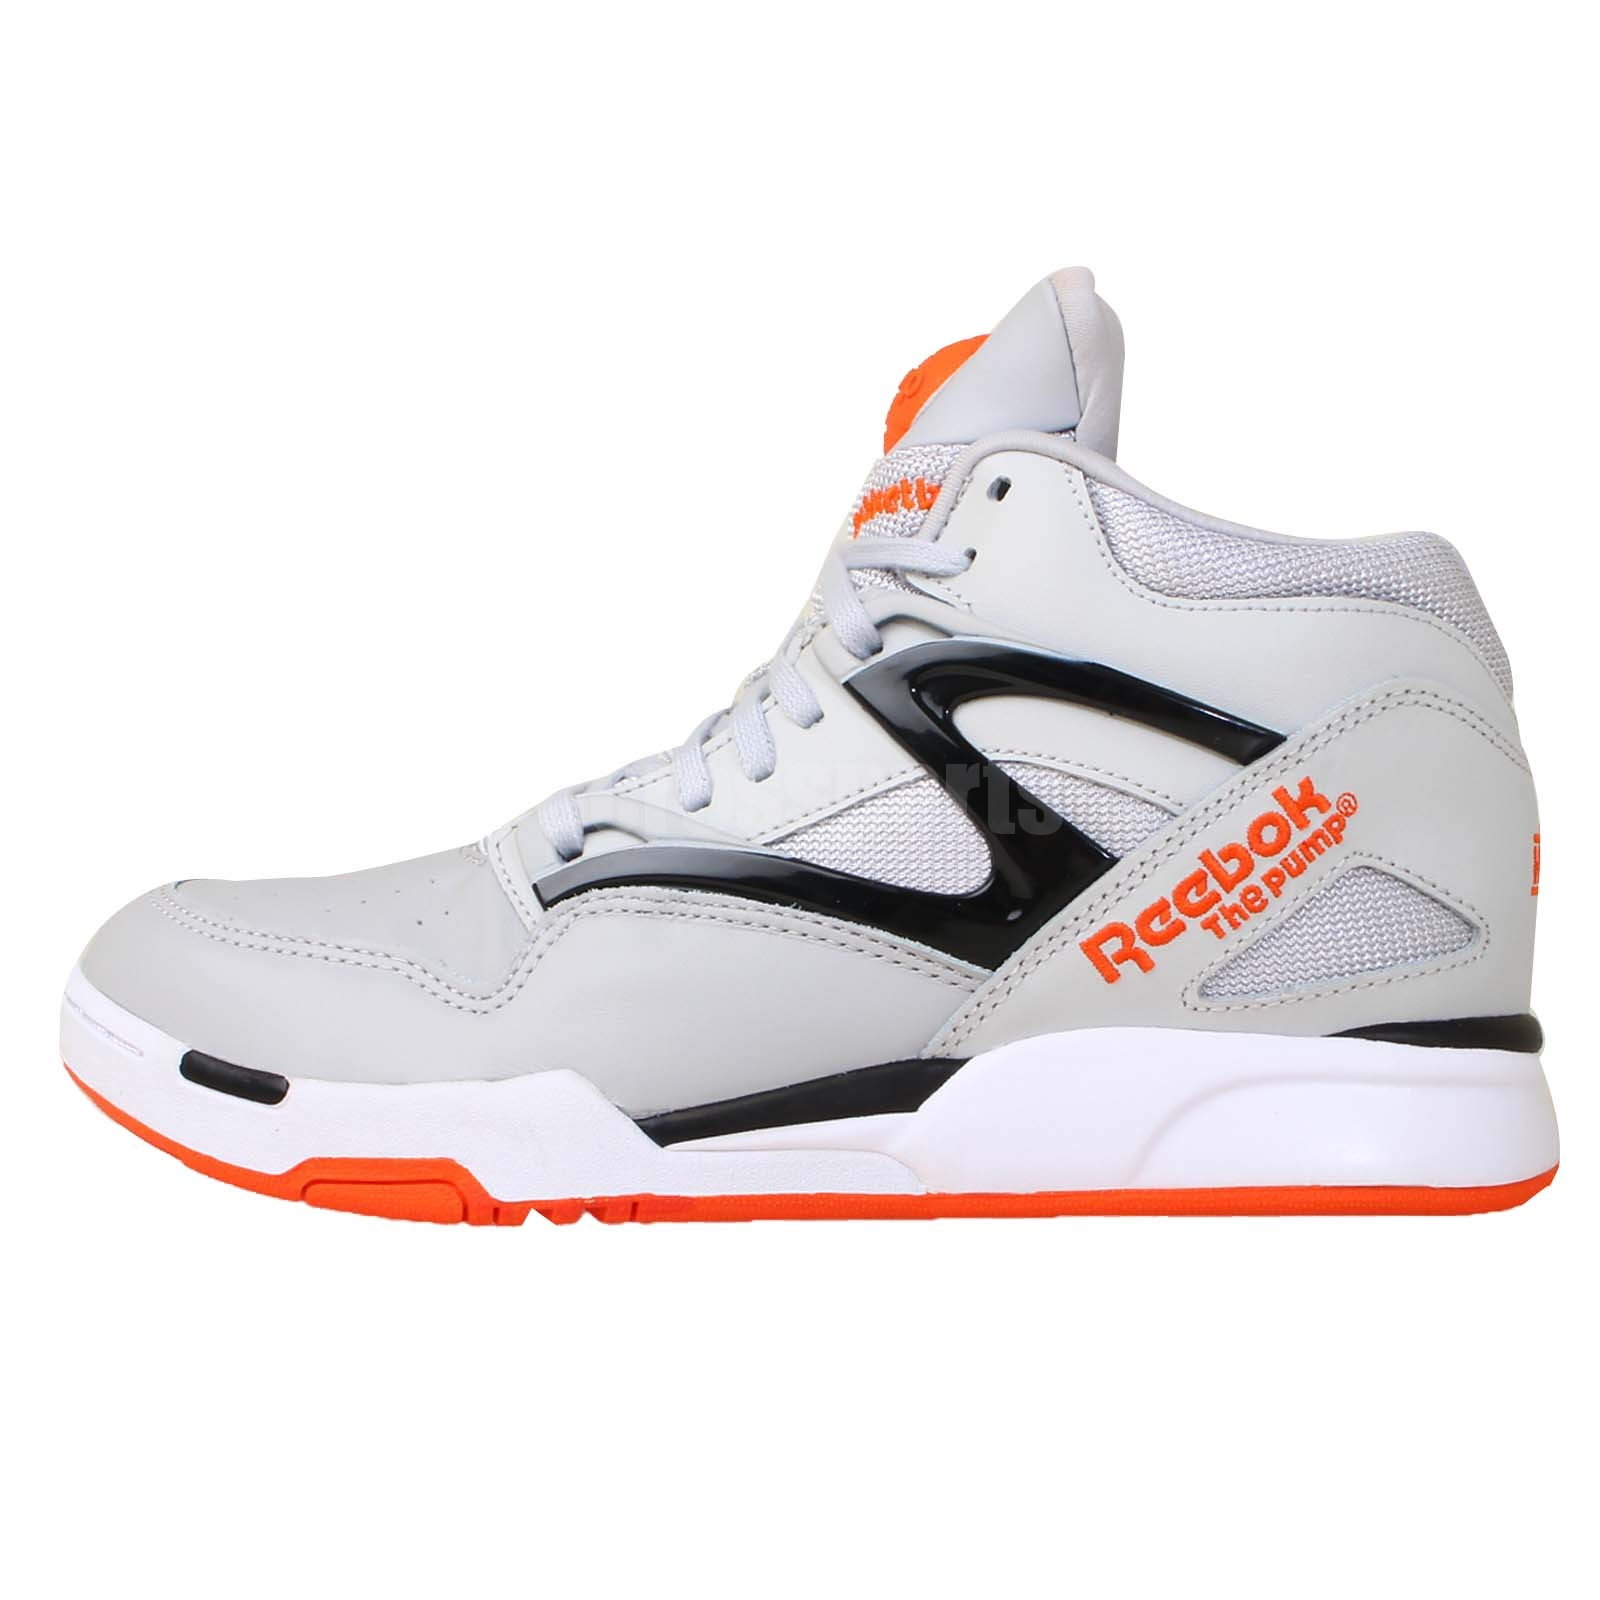 reebok pump omni lite grey black orange 2014 mens retro basketball shoes ebay. Black Bedroom Furniture Sets. Home Design Ideas